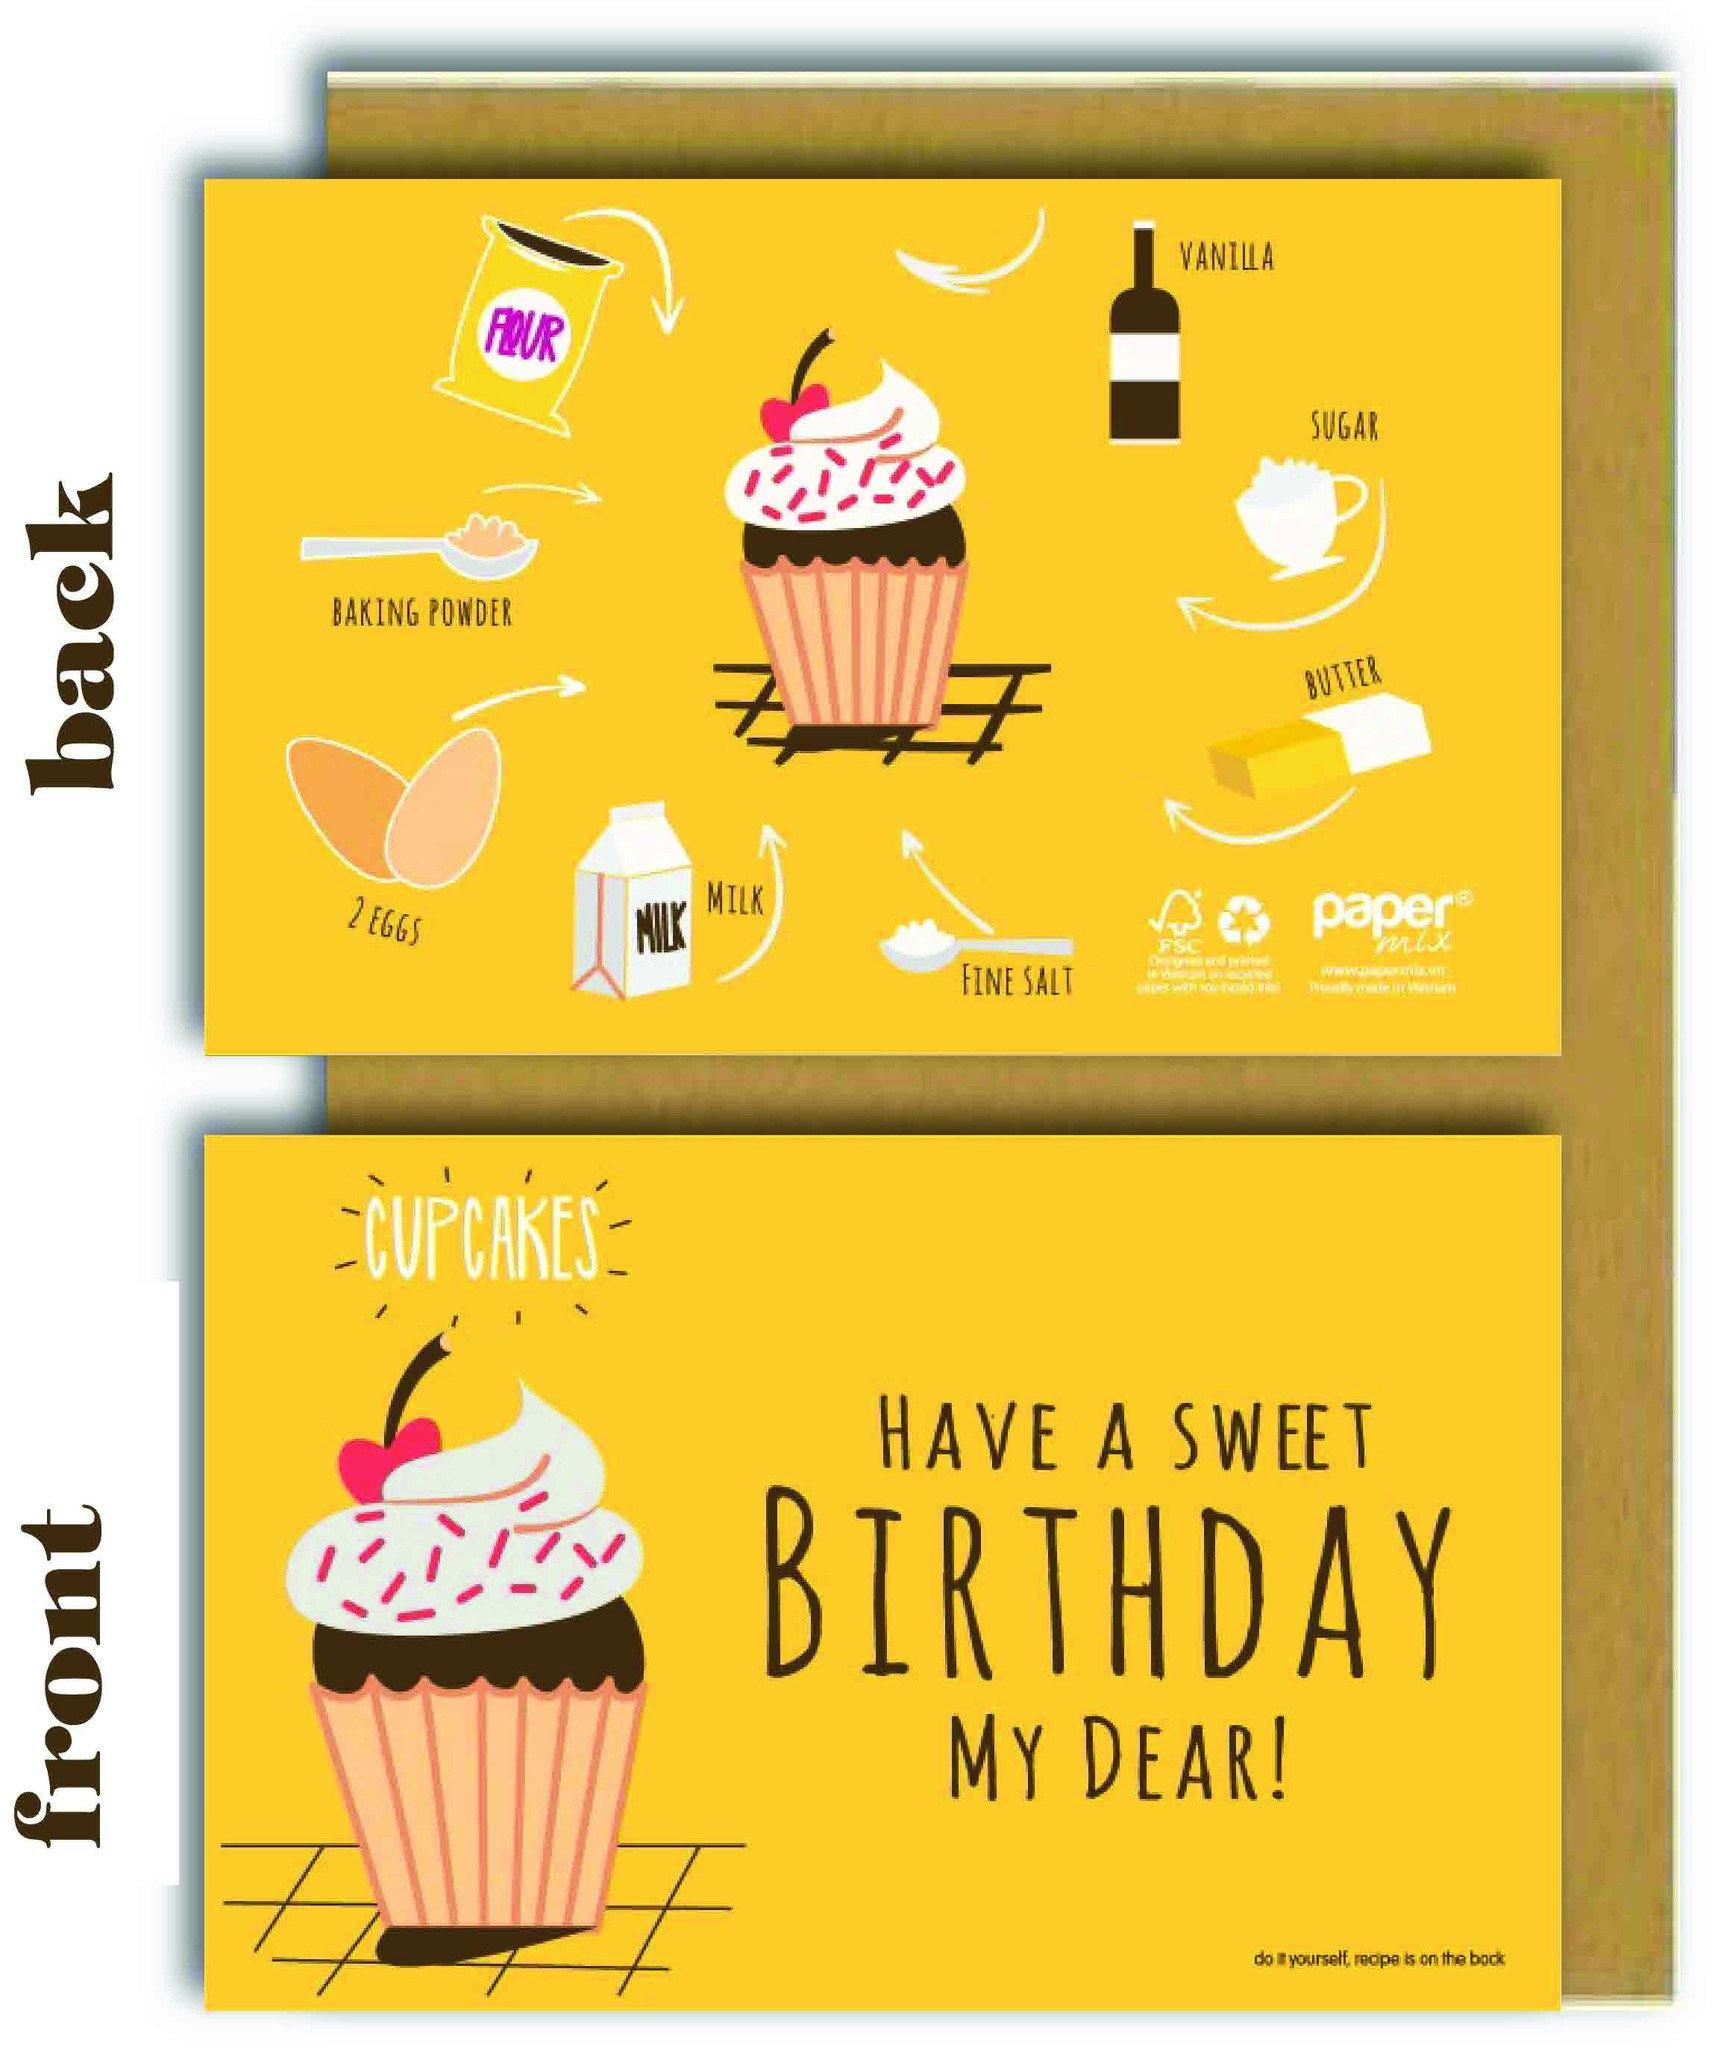 Have A Sweet Birthday (Cupcake) Greeting Card - Birthday Cards - Papermix - Naiise